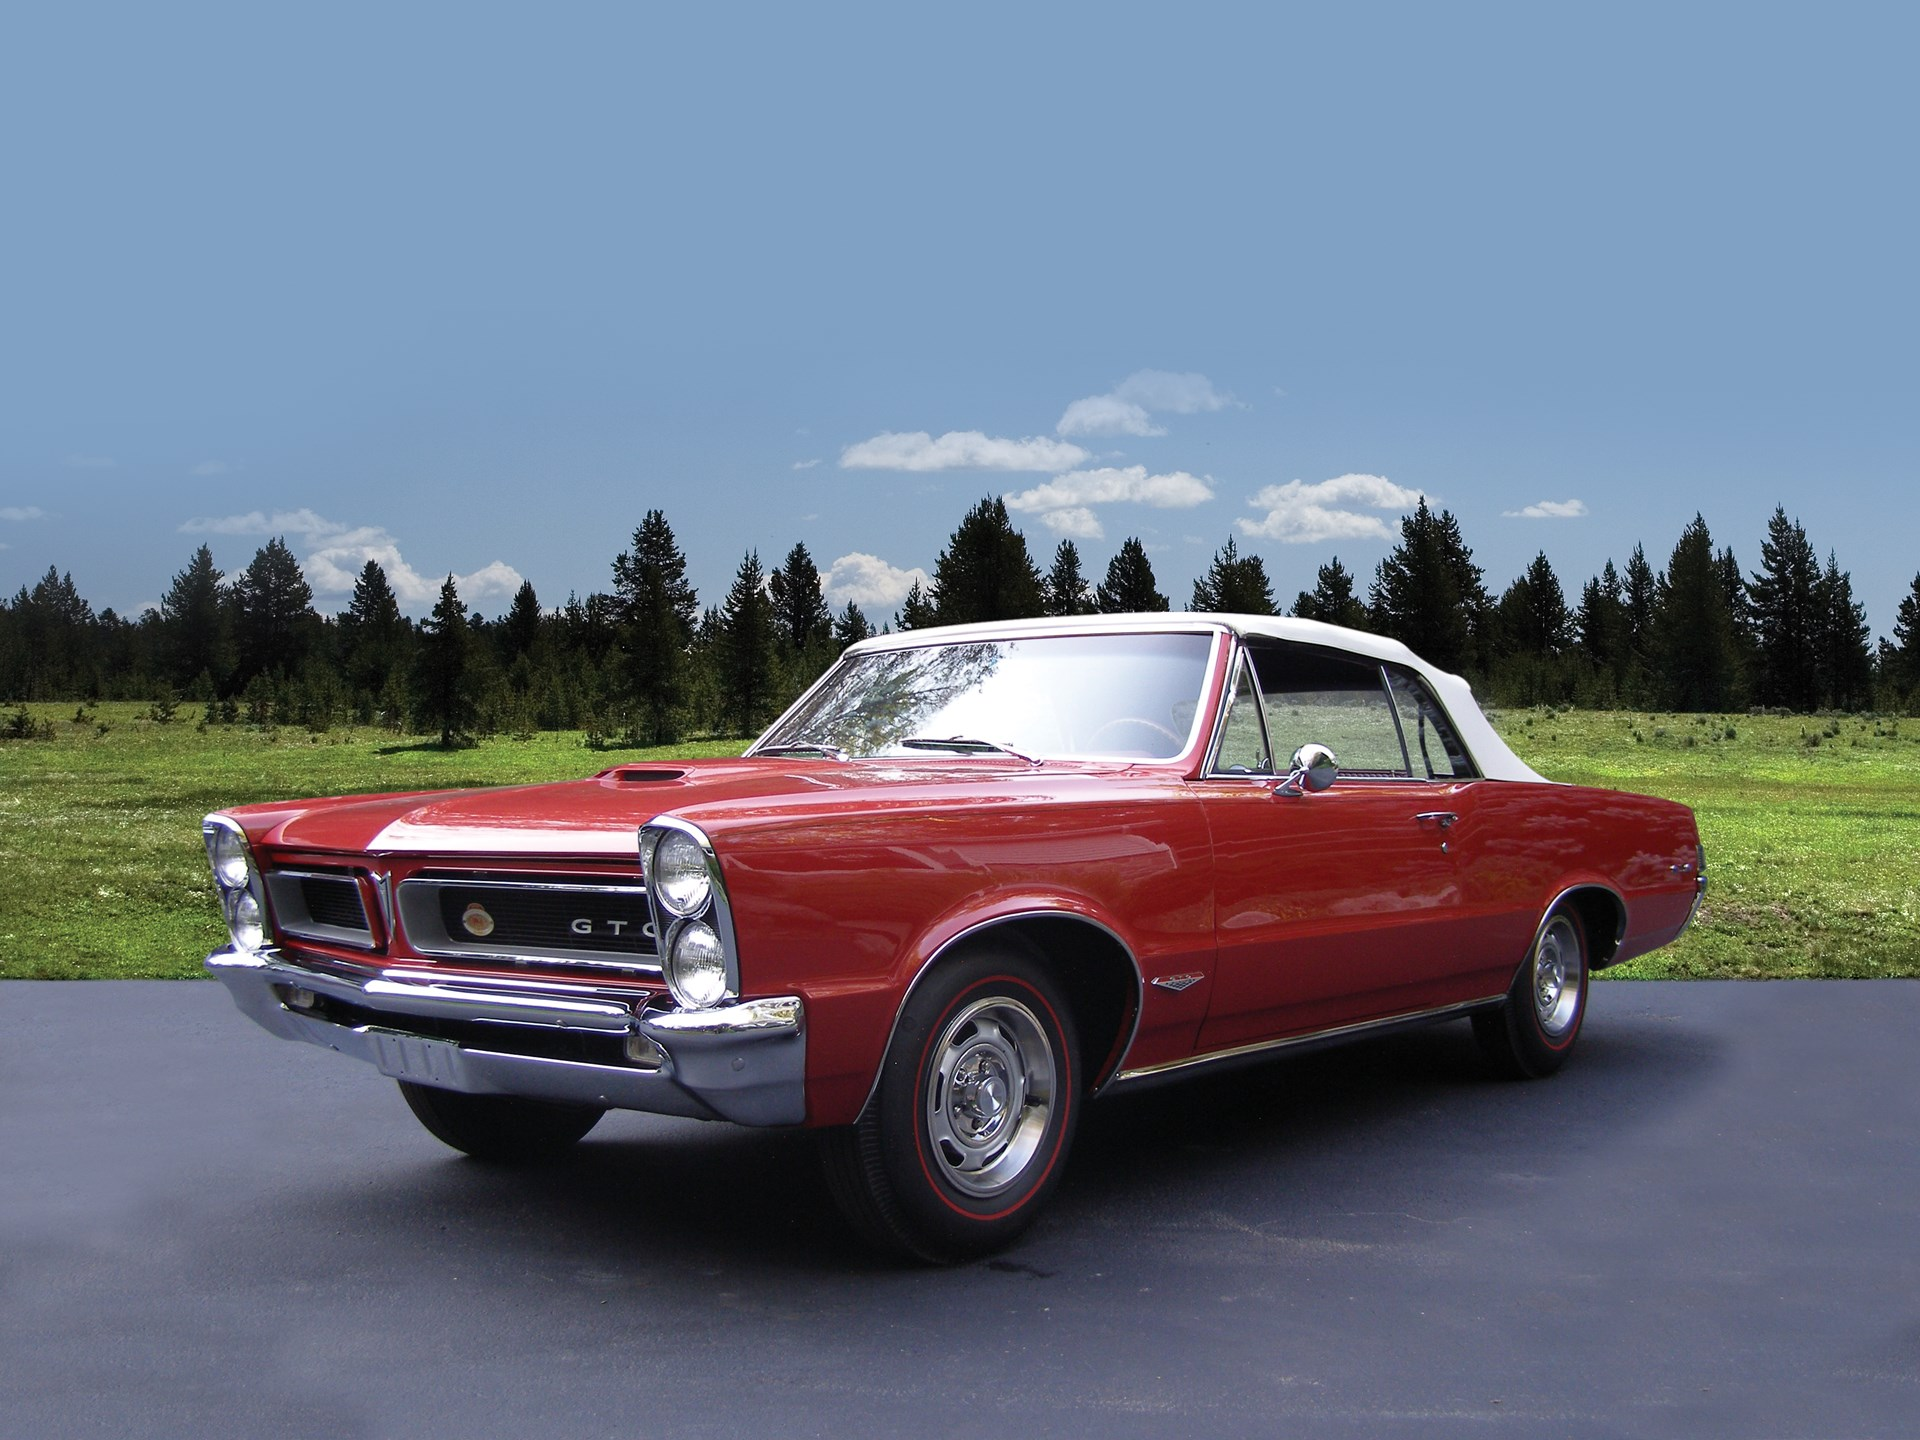 RM Sotheby's - 1965 Pontiac GTO Convertible | Vintage Motor Cars at ...